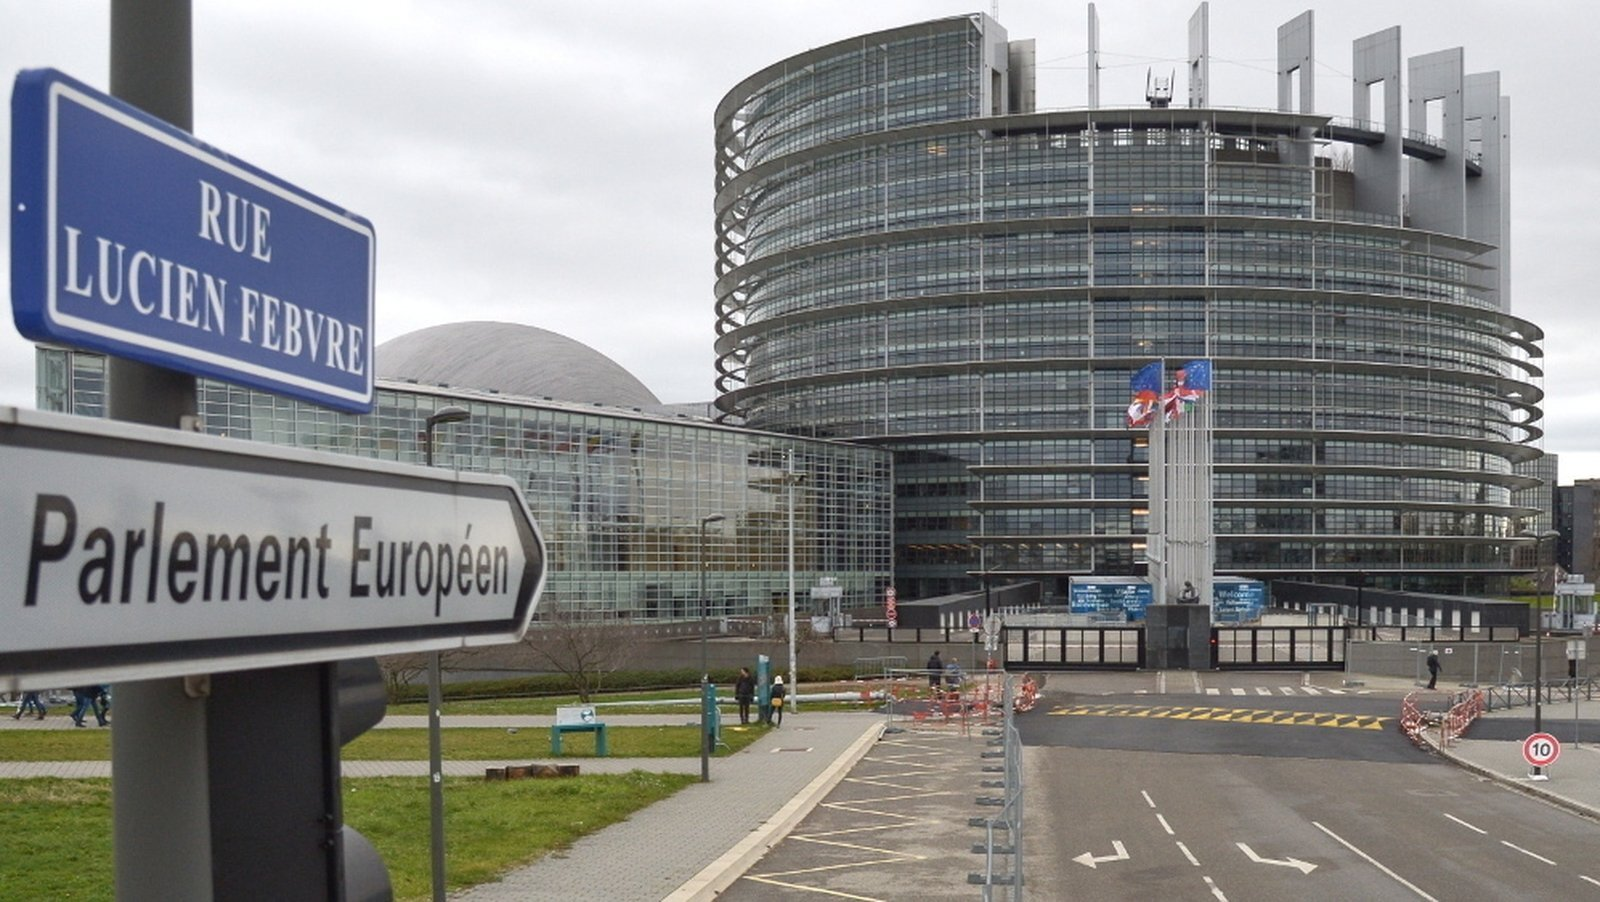 04.06.2021 – Important vote in European Parliament on Freedom of Conscience and abortion